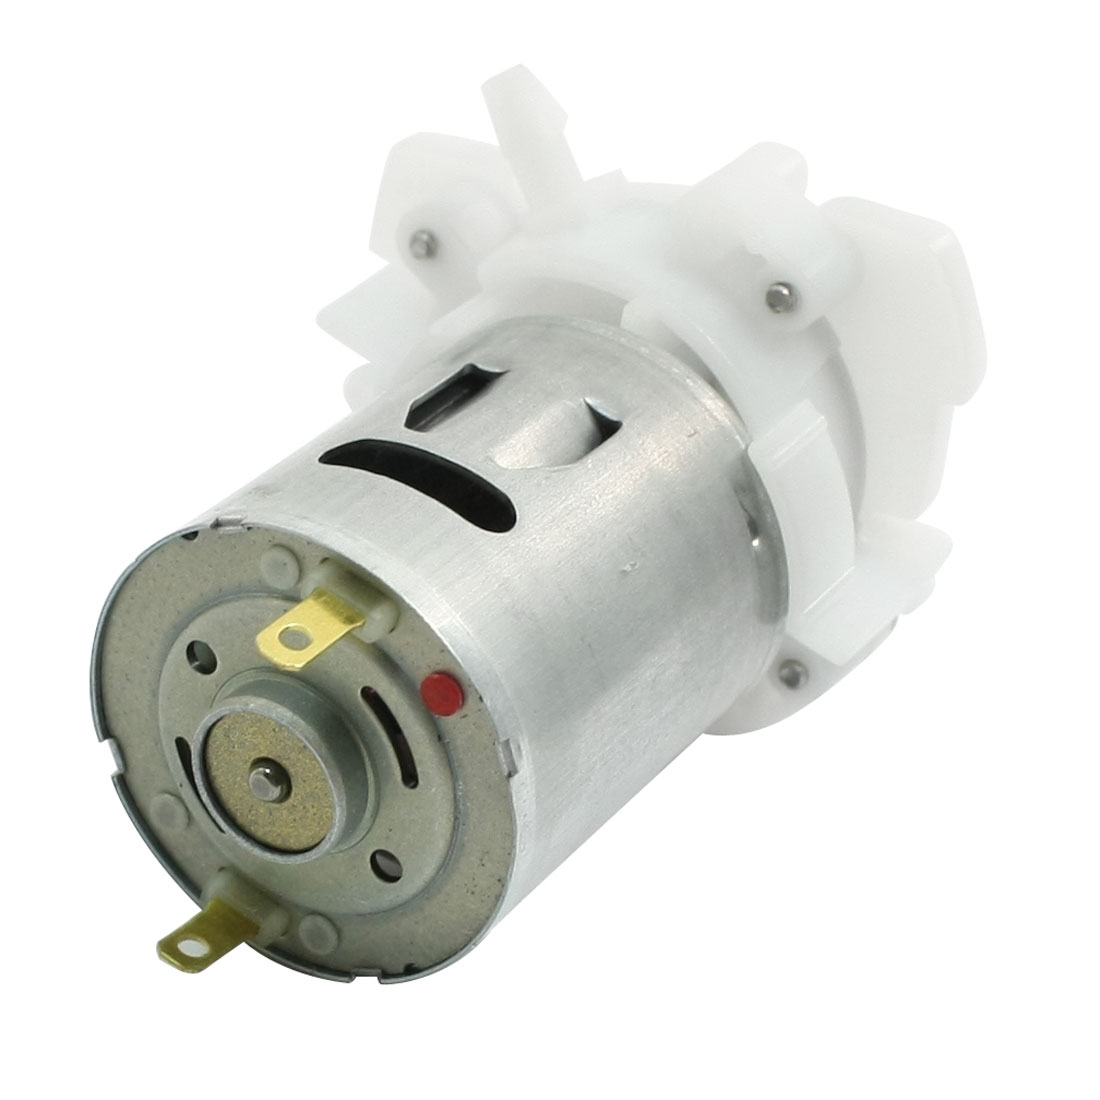 Water Pump 6000R/Min 3.5mm Tube Dia DC 12V High Torque Mini Micro Motor